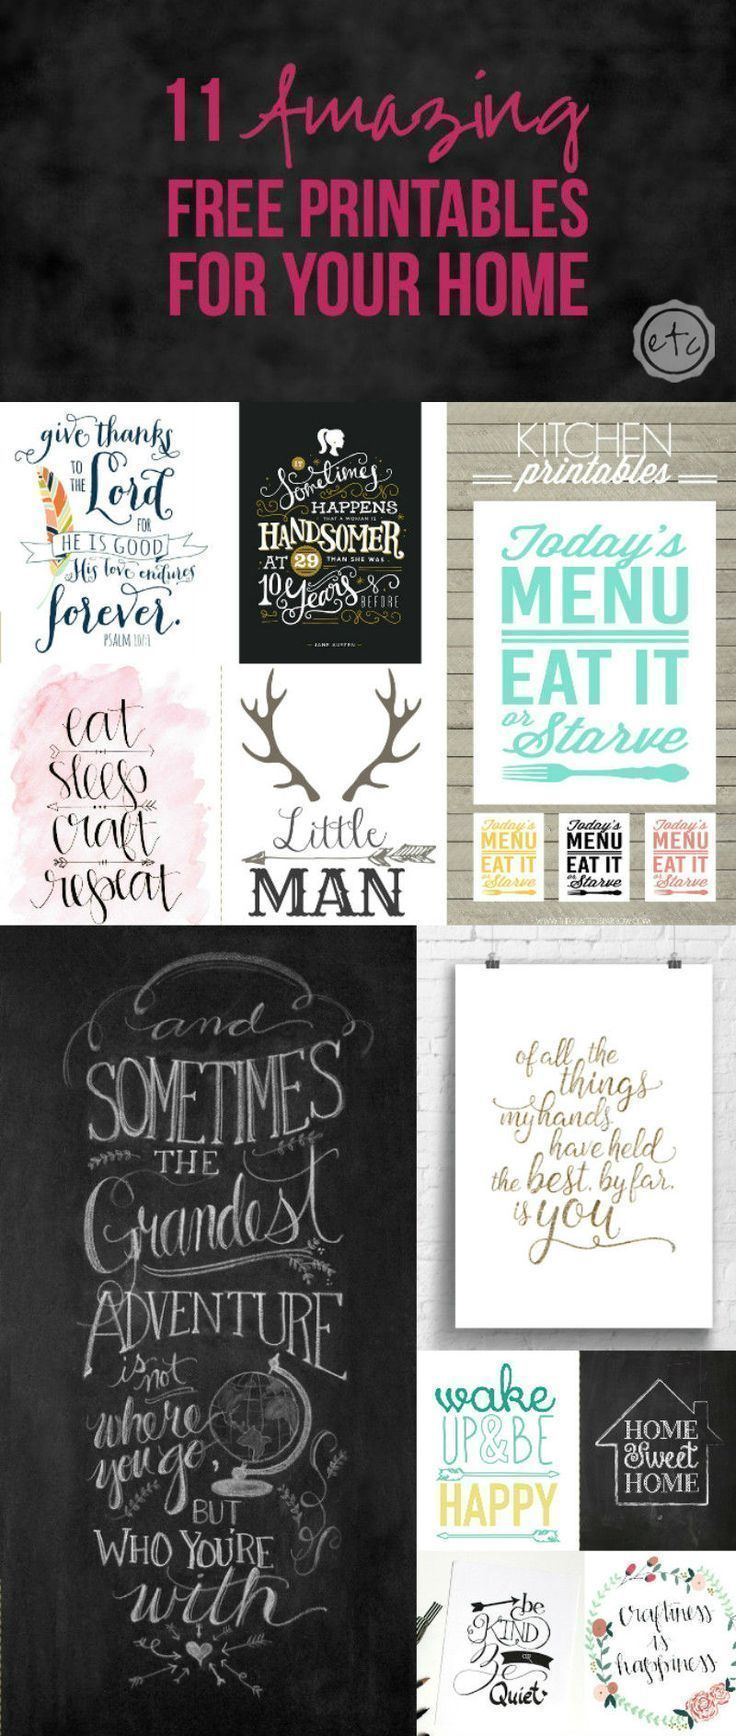 11 Amazing Free Printables for Your Home - Happily Ever After, Etc.